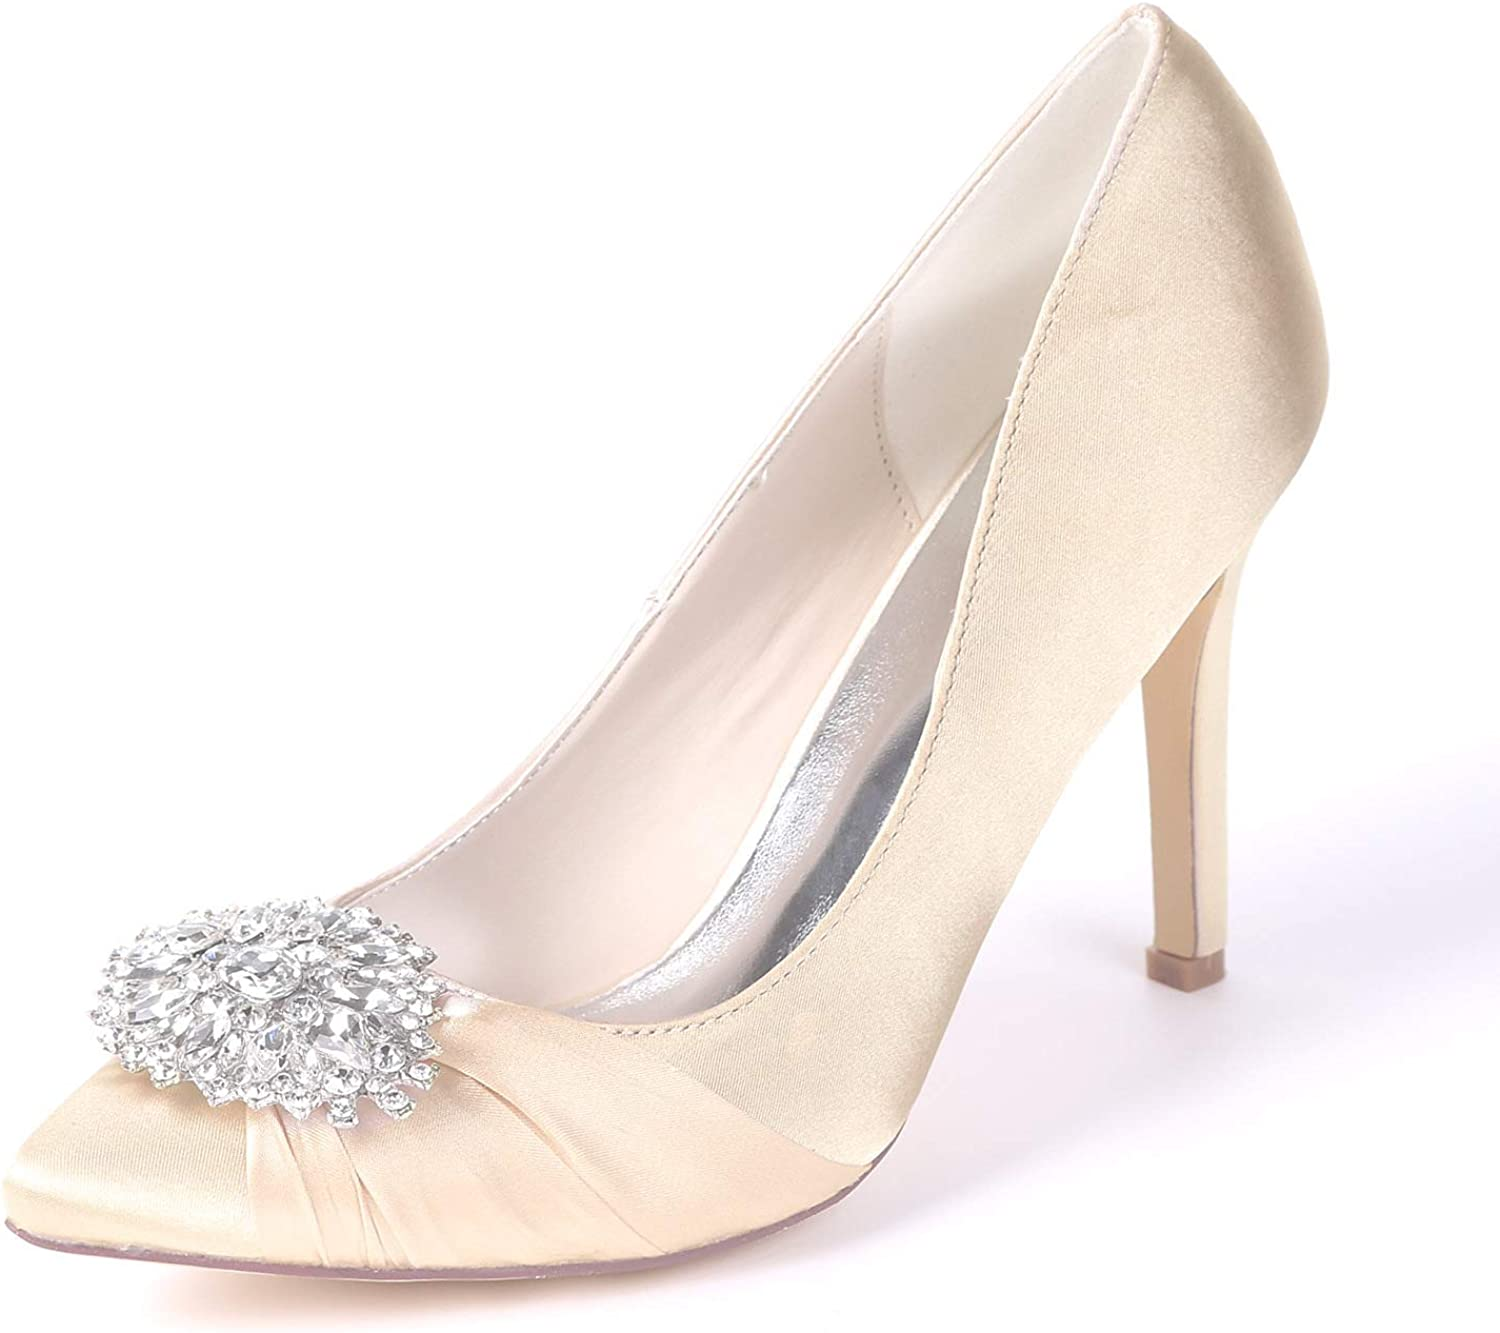 CCBubble High Heels Satin Bridal Pumps Pointed Toe Crystals Prom Evening Party Women shoes 0608-01AB